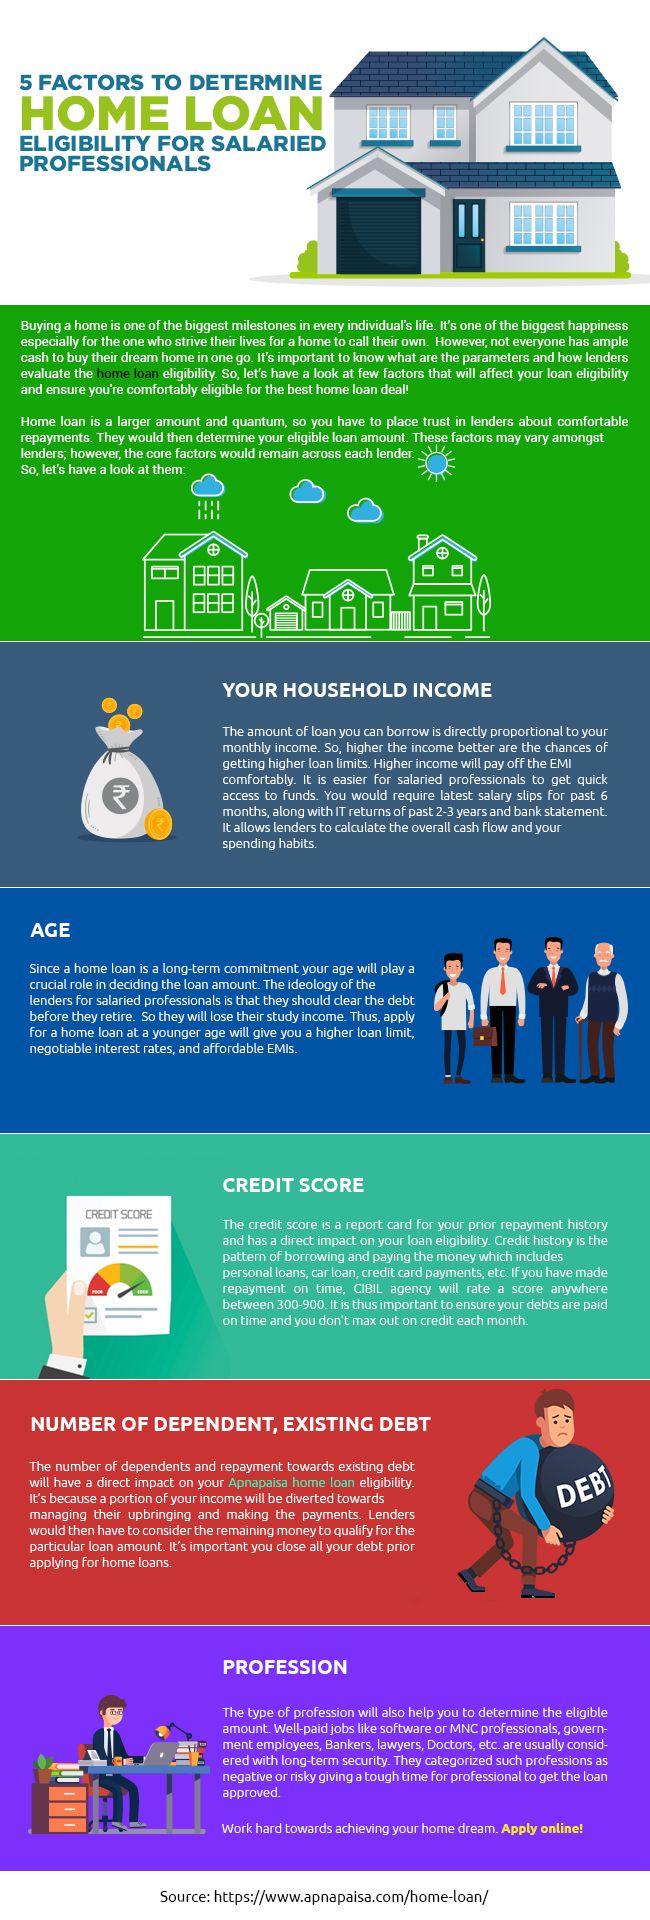 5 Factors To Determine Home Loan Eligibility For Salaried Professionals Home Loans Loan Best Home Loans